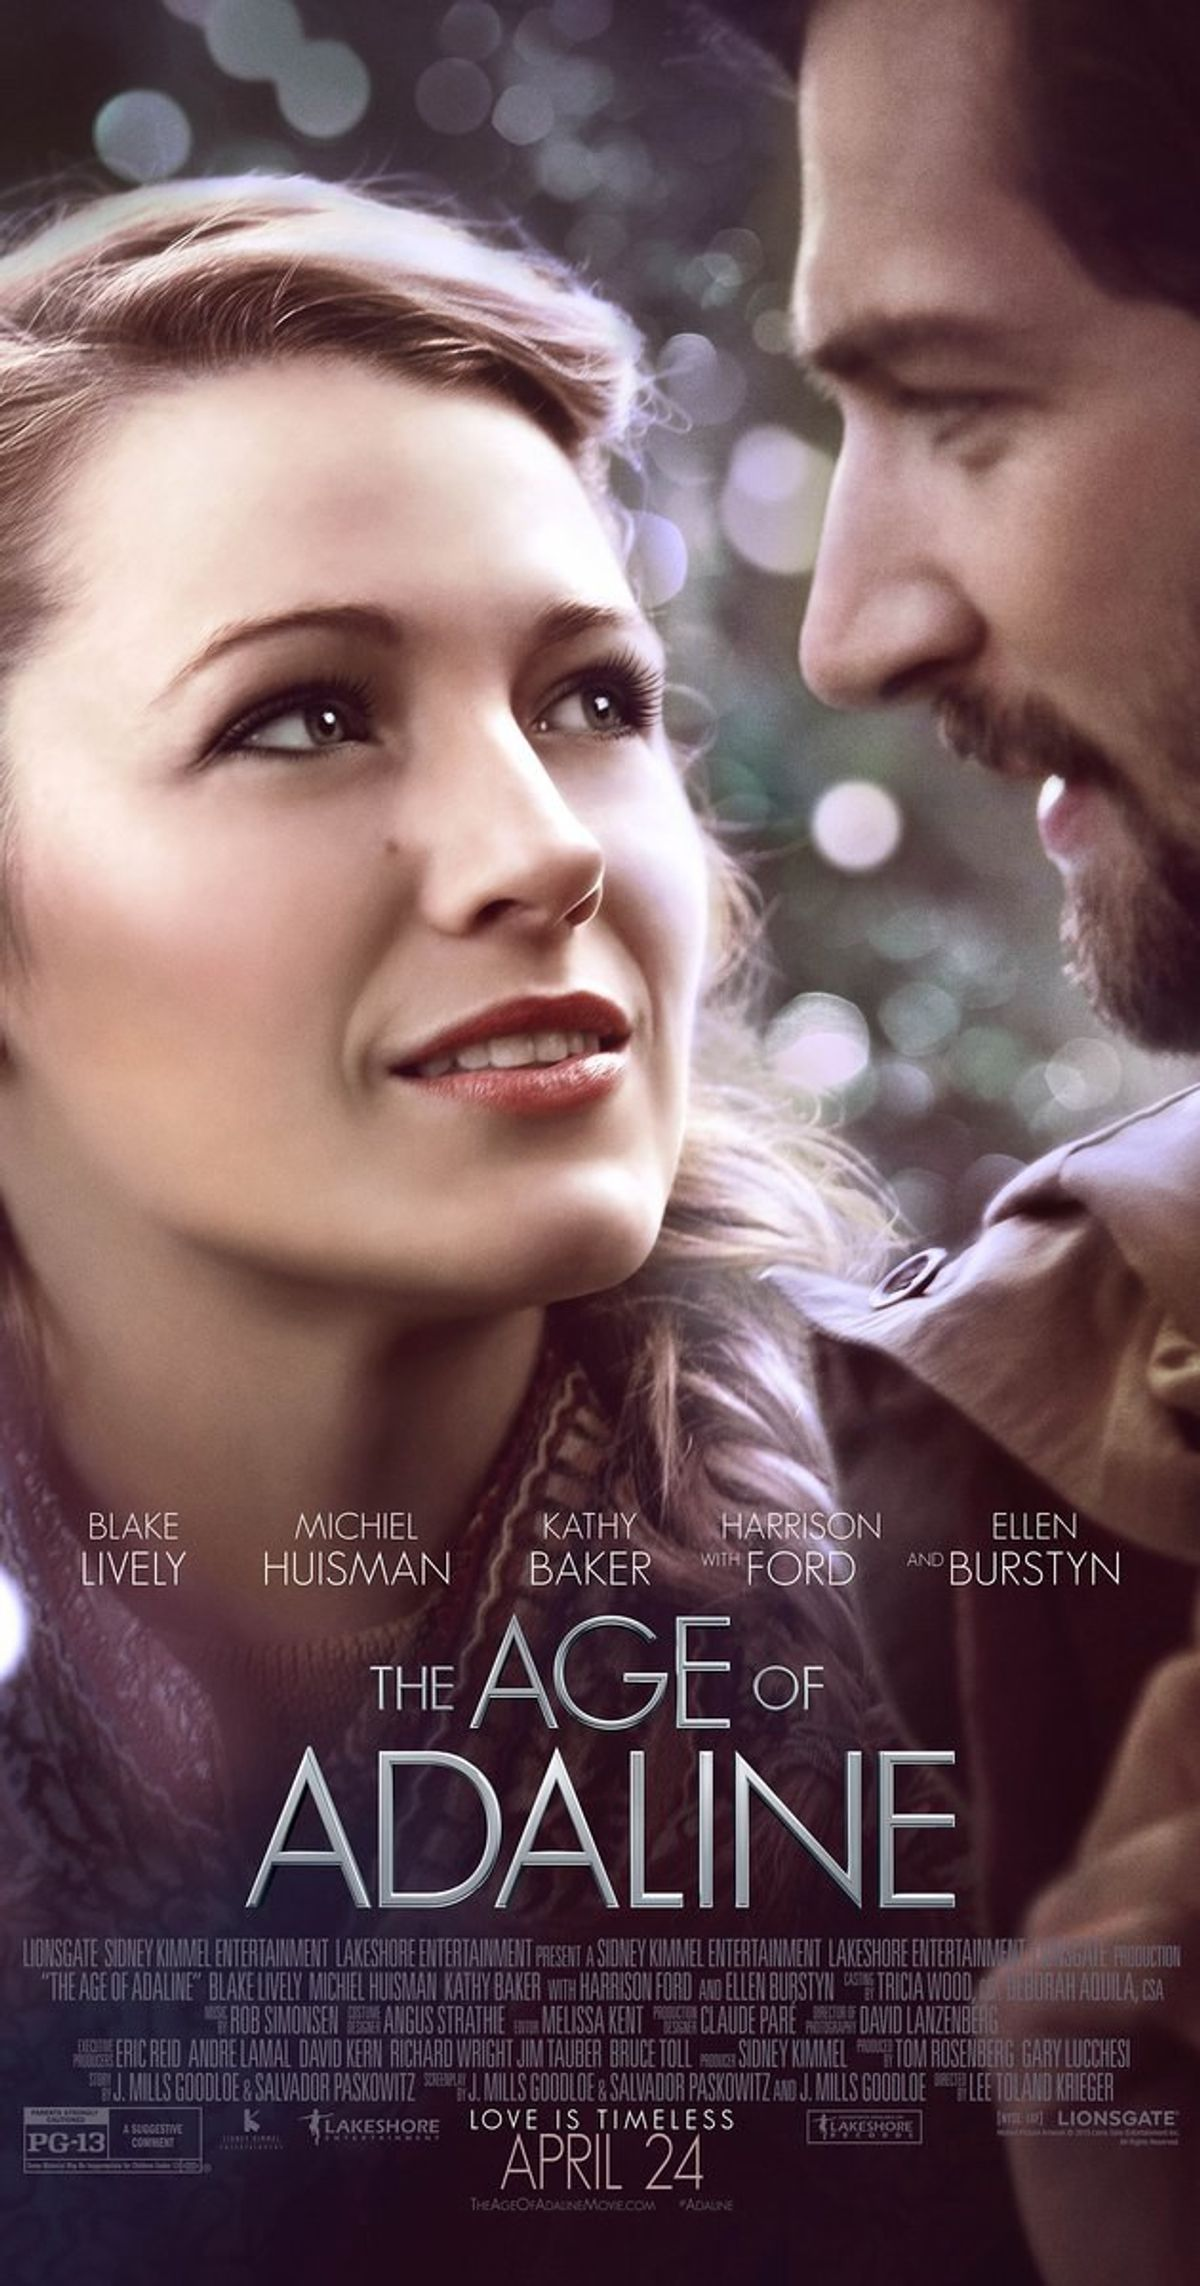 """The Age of Adaline:"" An Analysis"